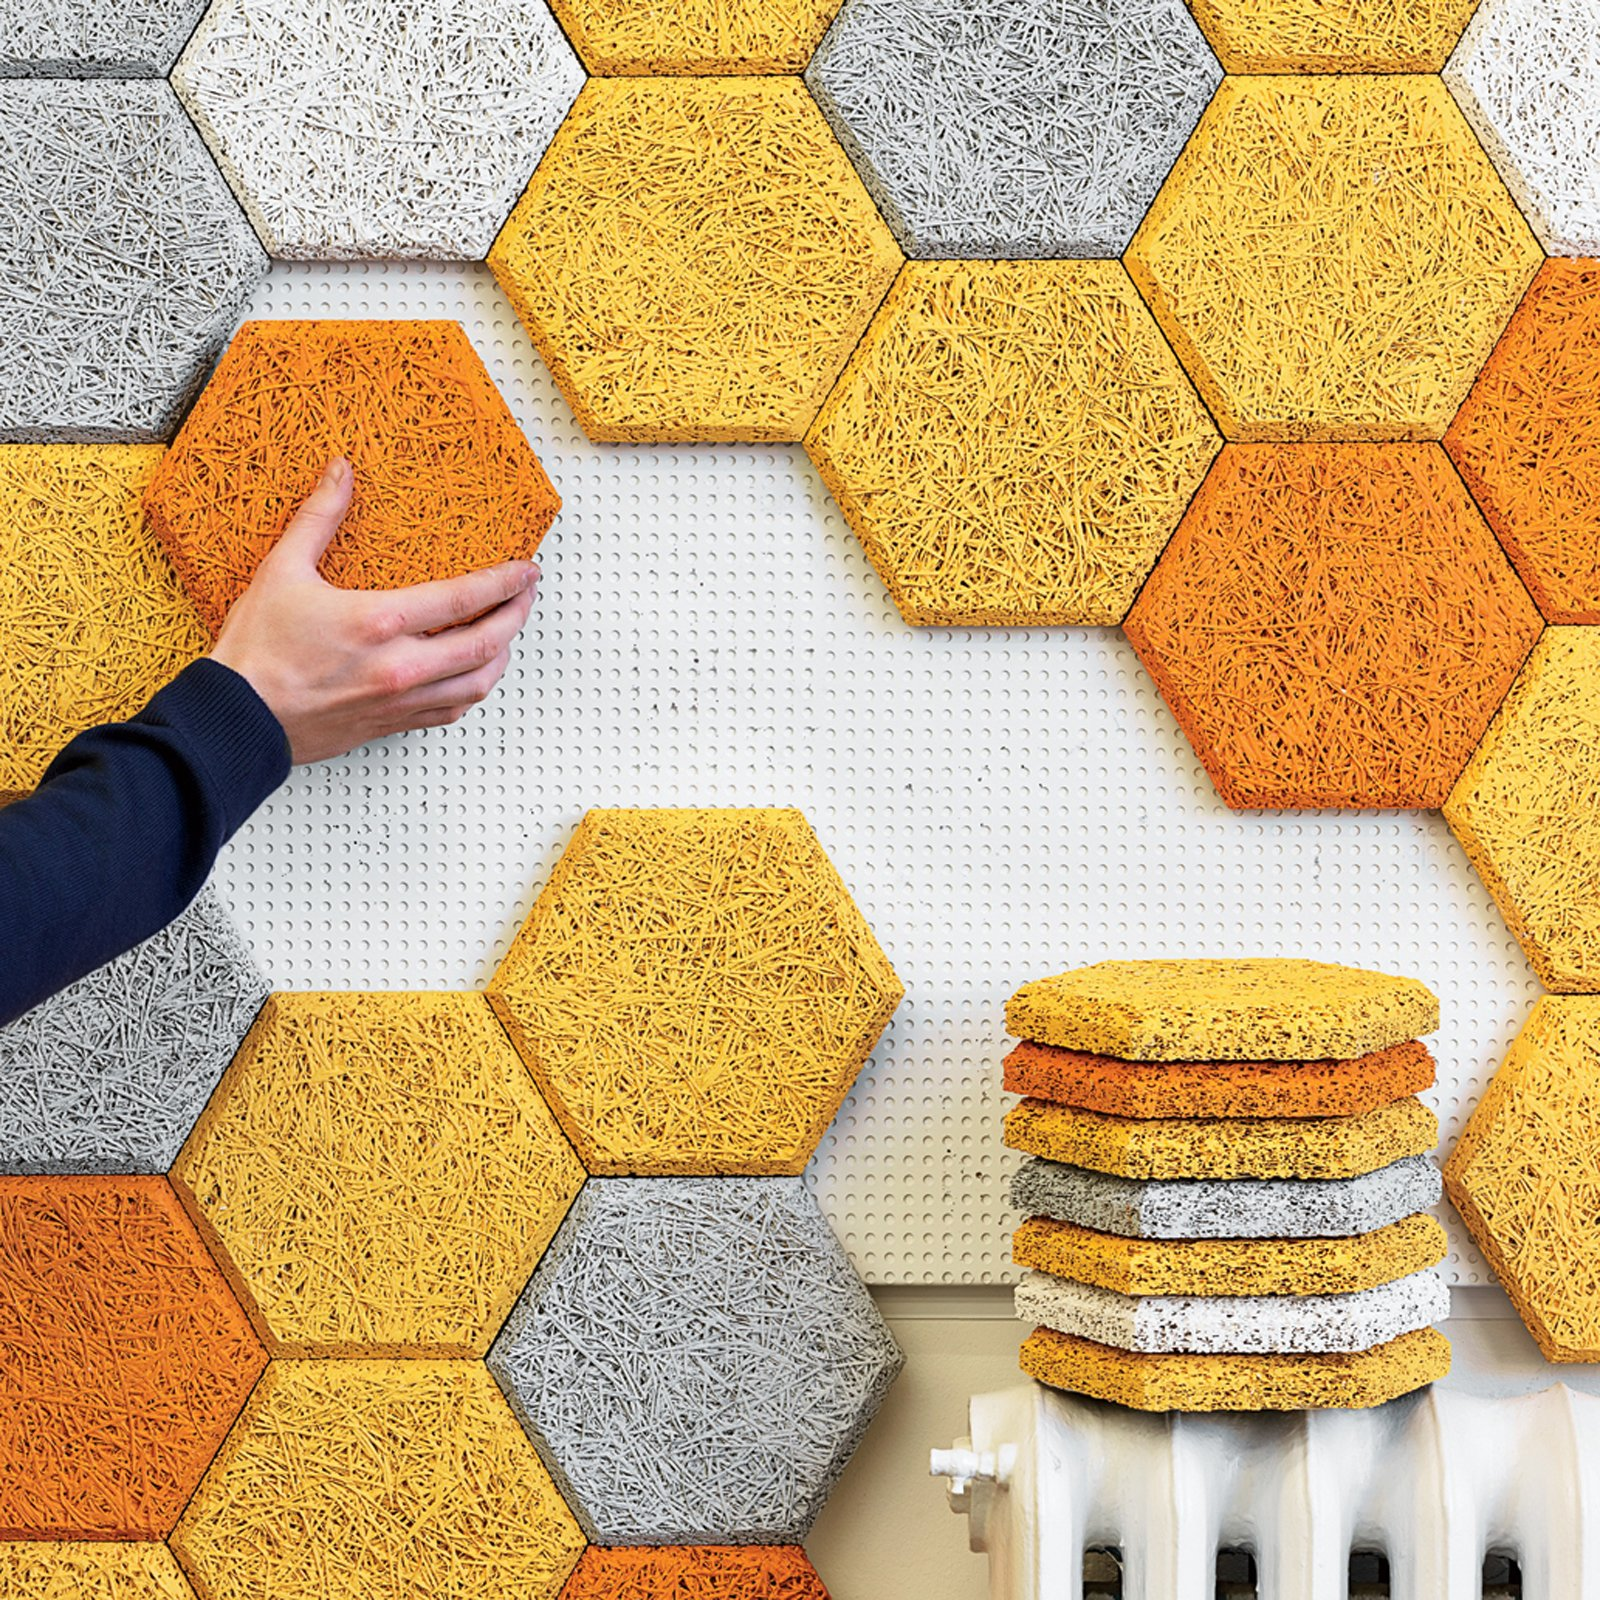 How to Use Modern Home Decor in Unexpected Ways - Photo 1 of 9 - BAUX Acoustic WoodWool Panels & Tiles are made from wood wool, cement, and water—and are recyclable and eco-friendly.